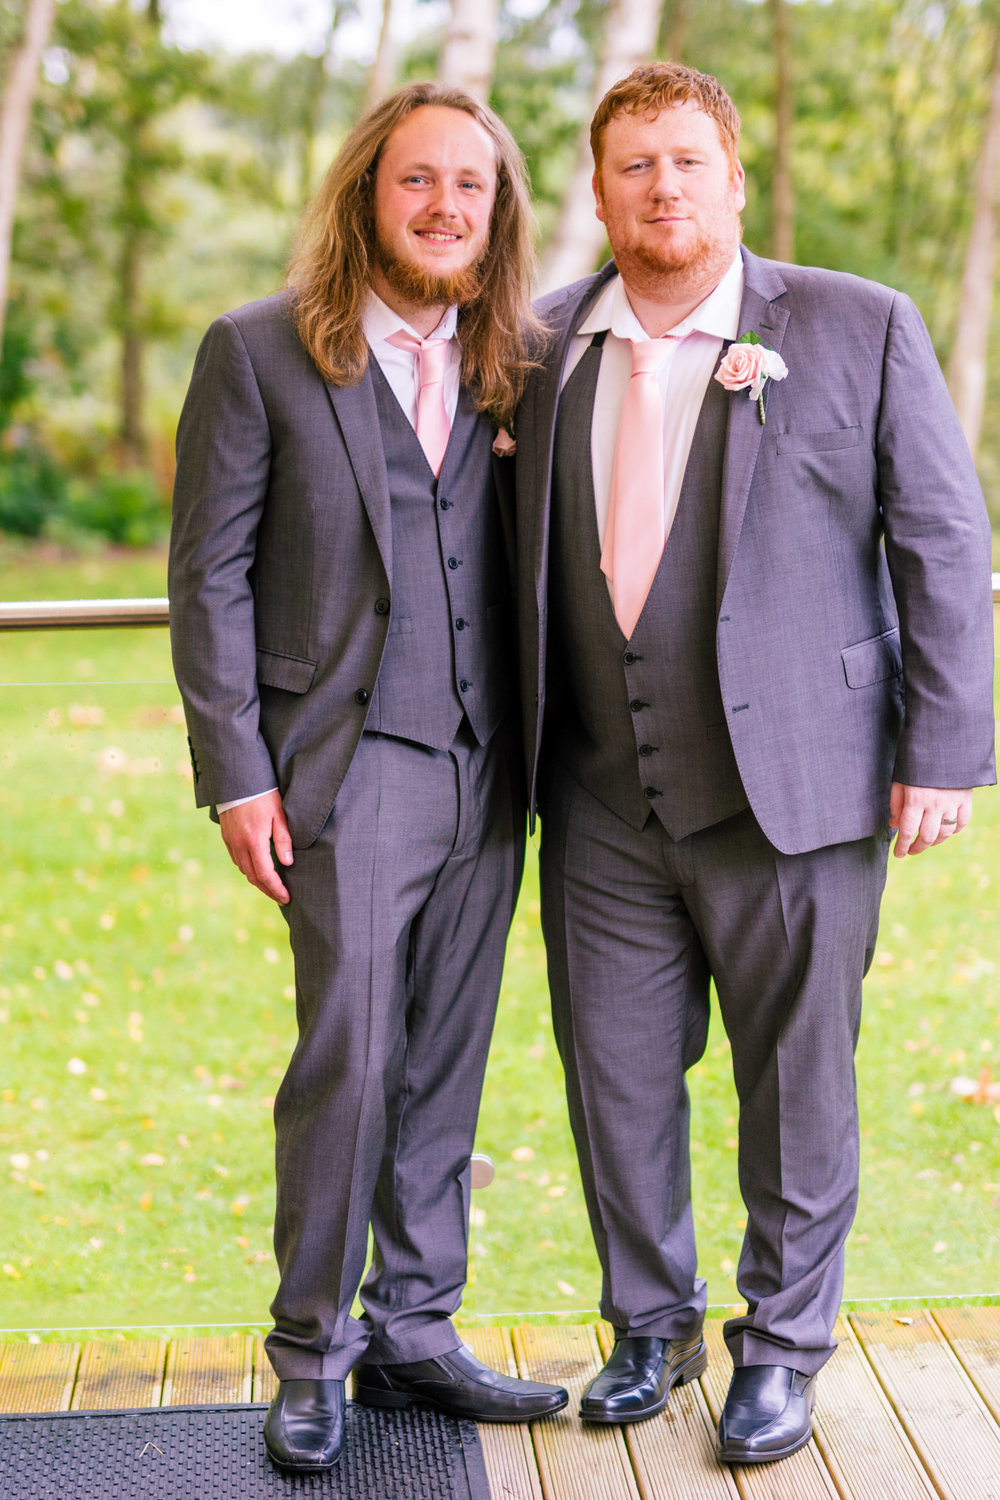 groom and best man together